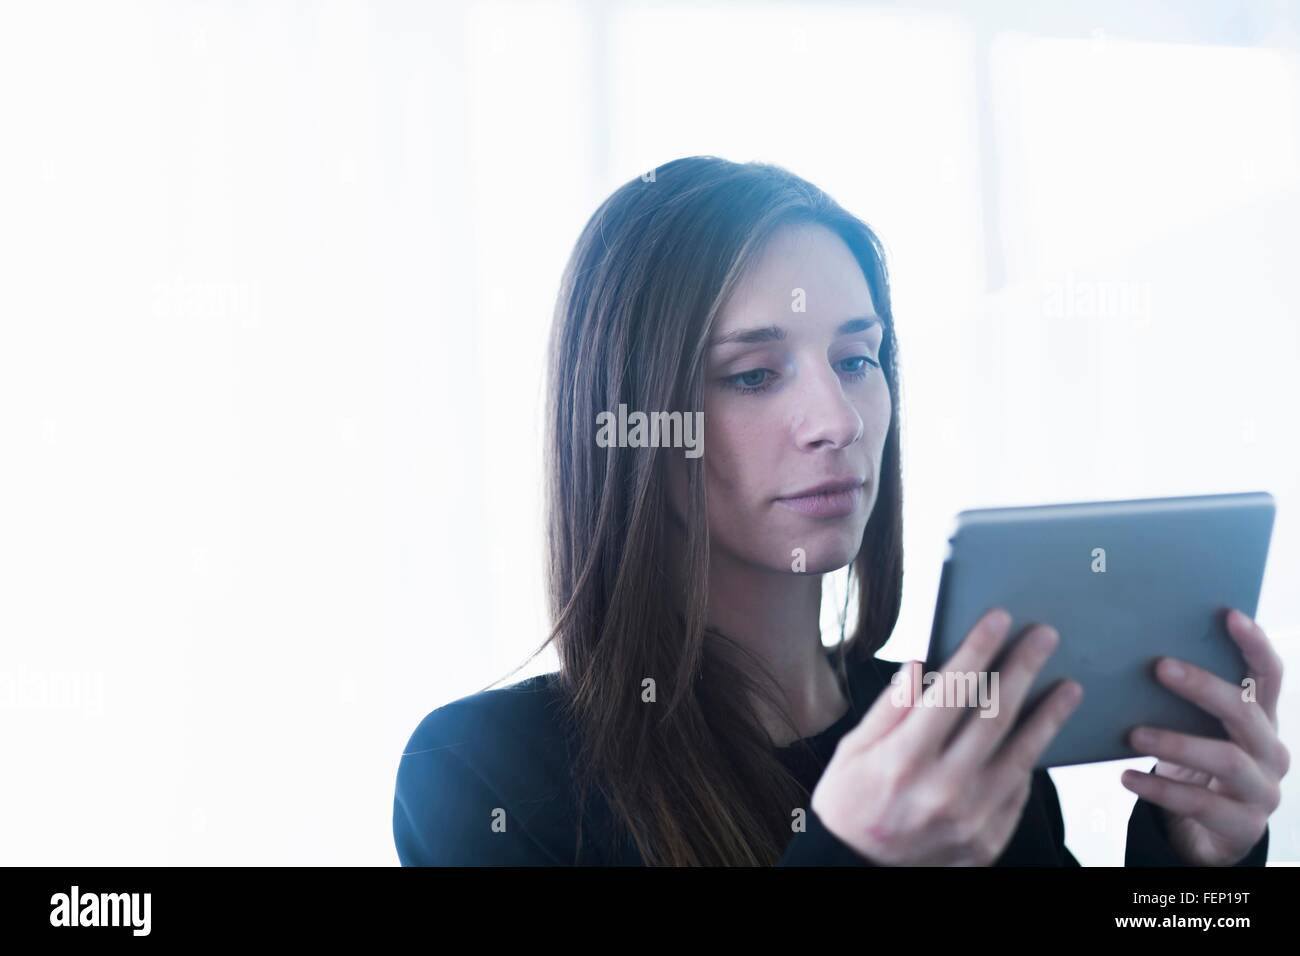 Head and shoulders of young woman using digital tablet - Stock Image